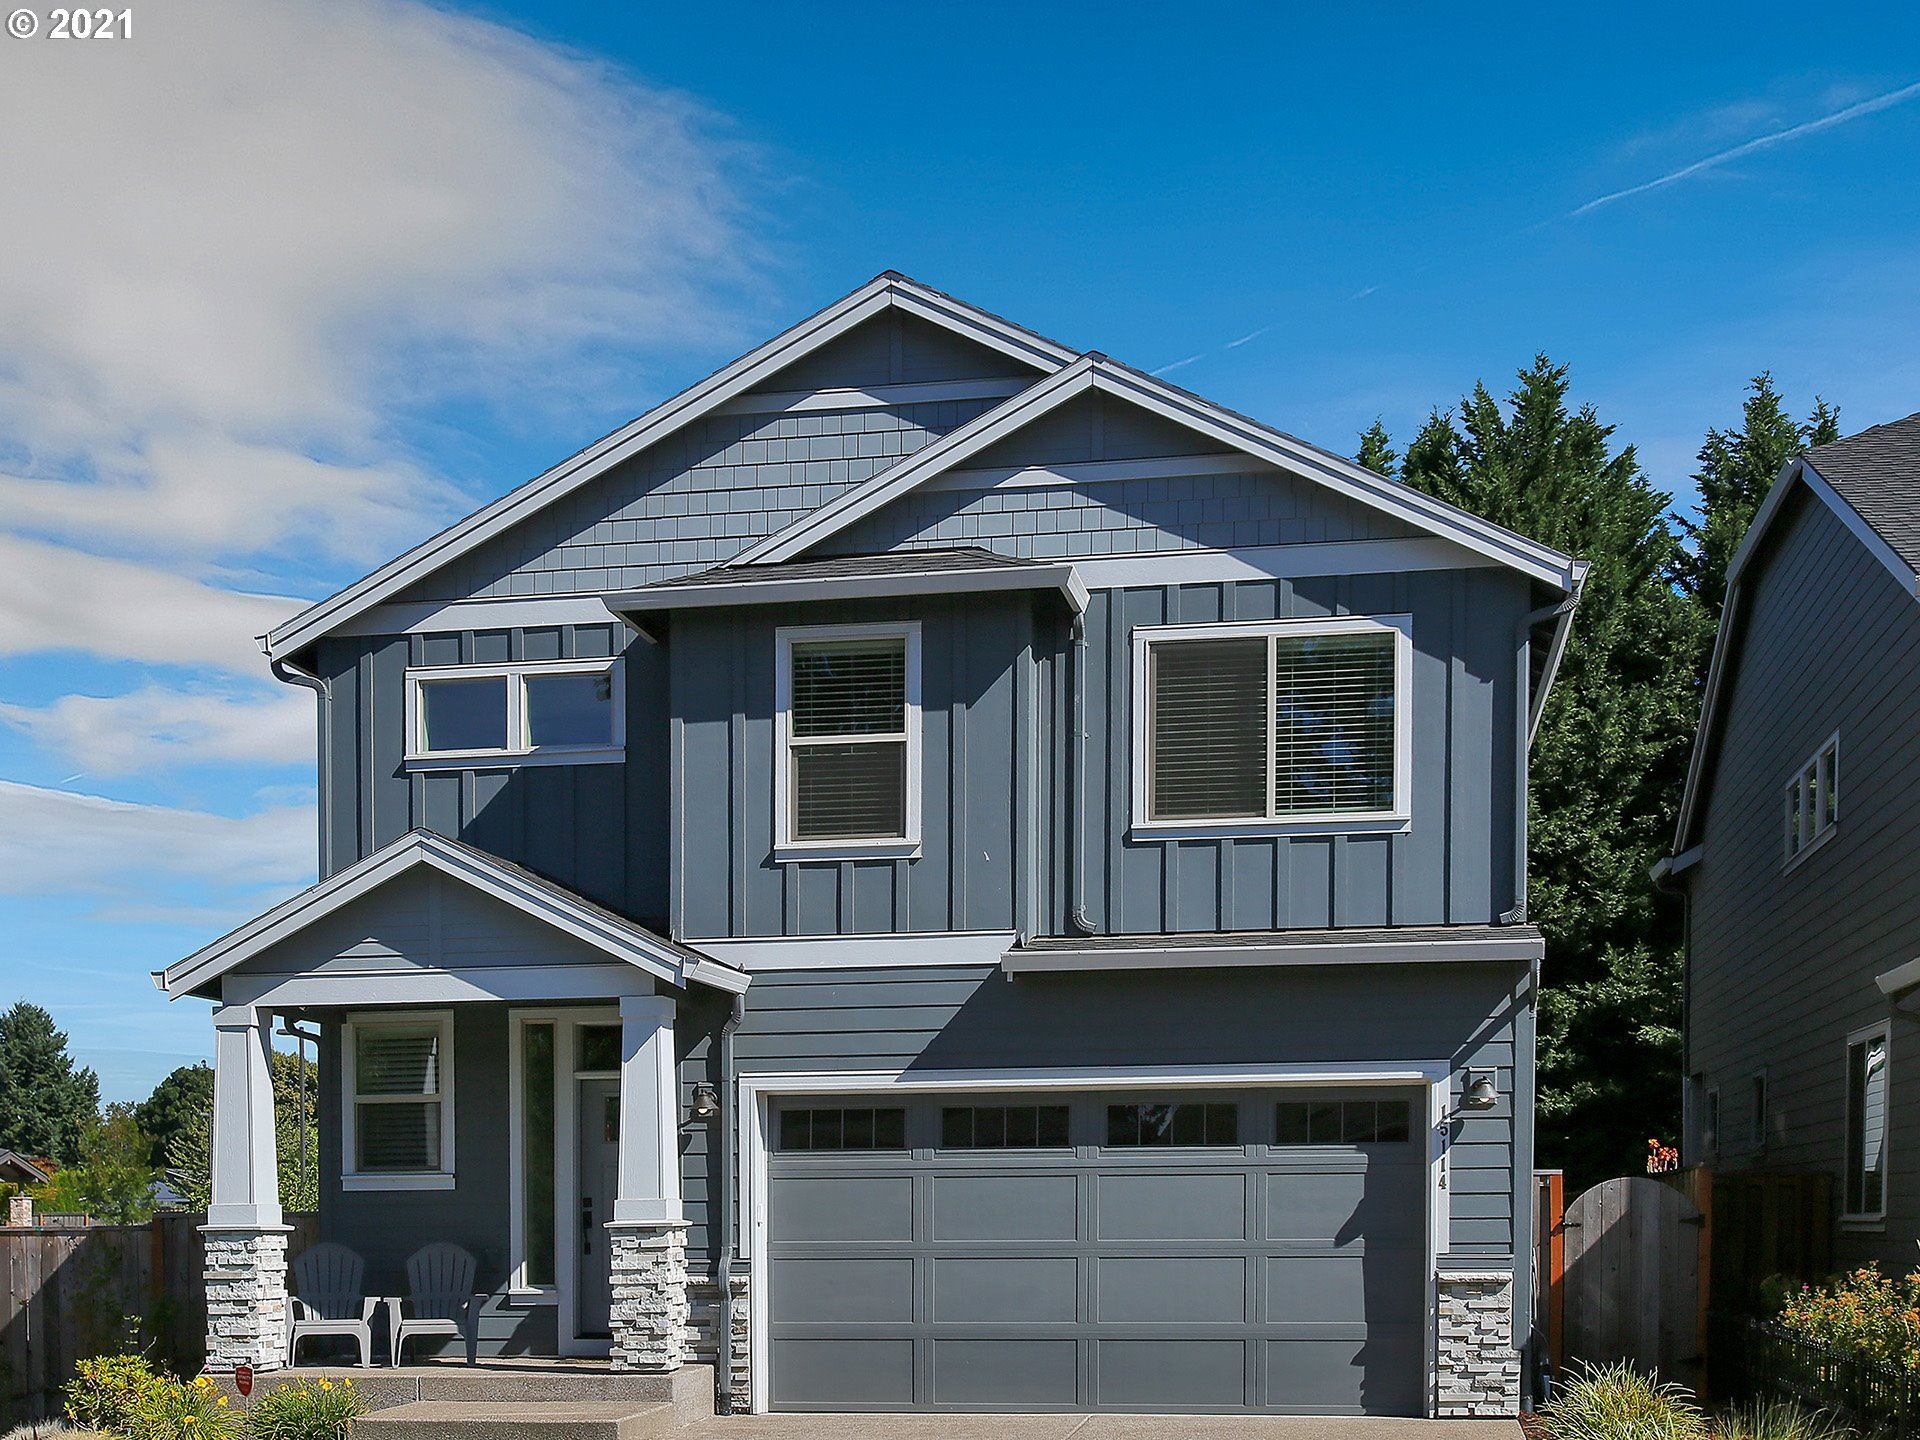 15114 SW CHANDLER LN, Tigard, OR 97224 - MLS#: 21006742